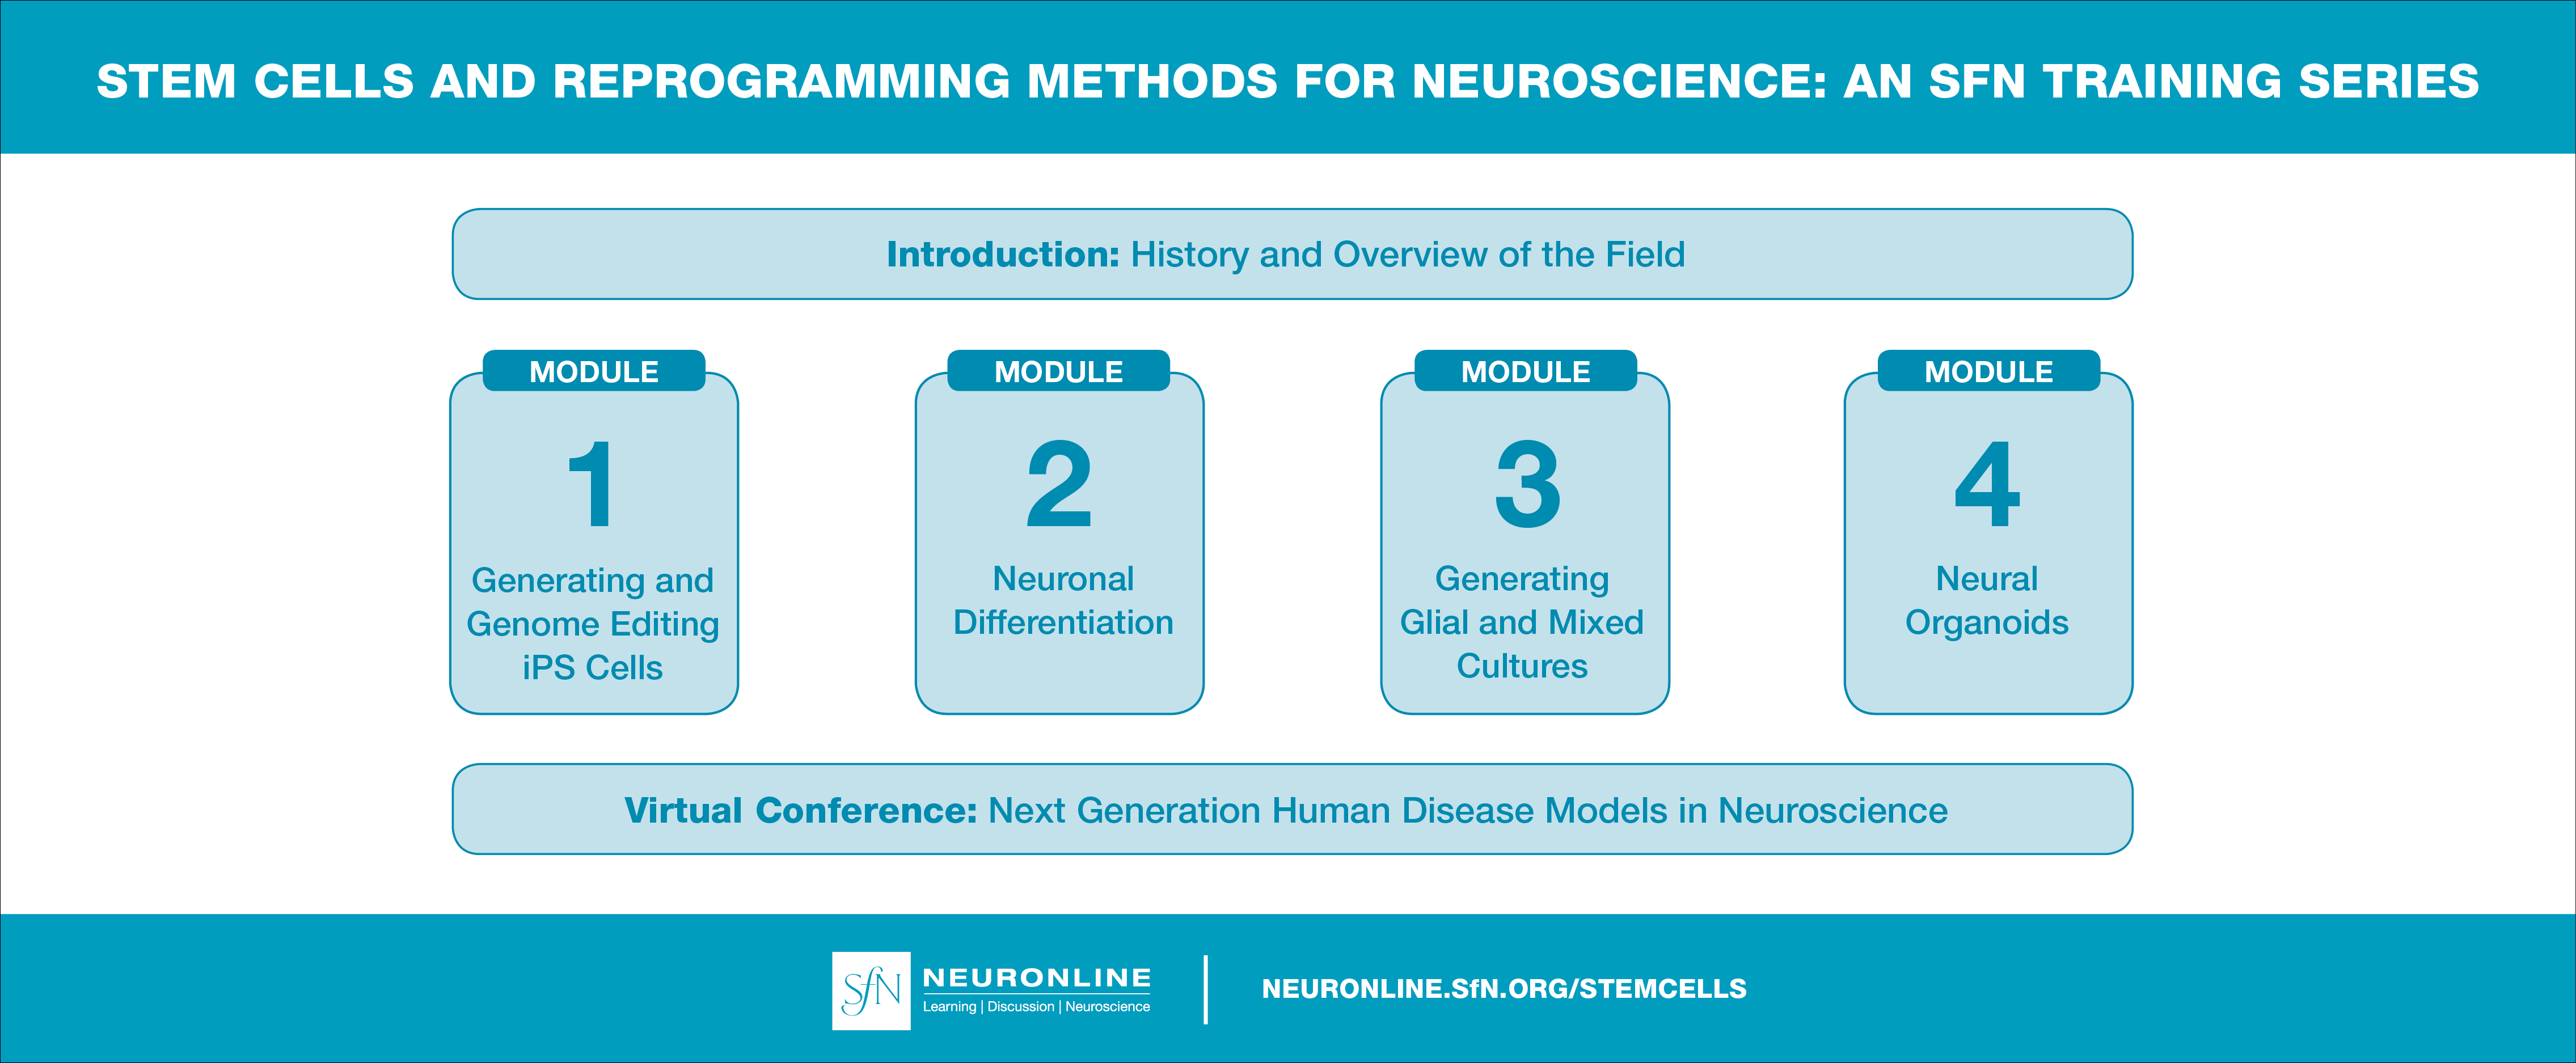 Layout of SfN's Training Series: Stem Cells and Reprogramming Methods for Neuroscience